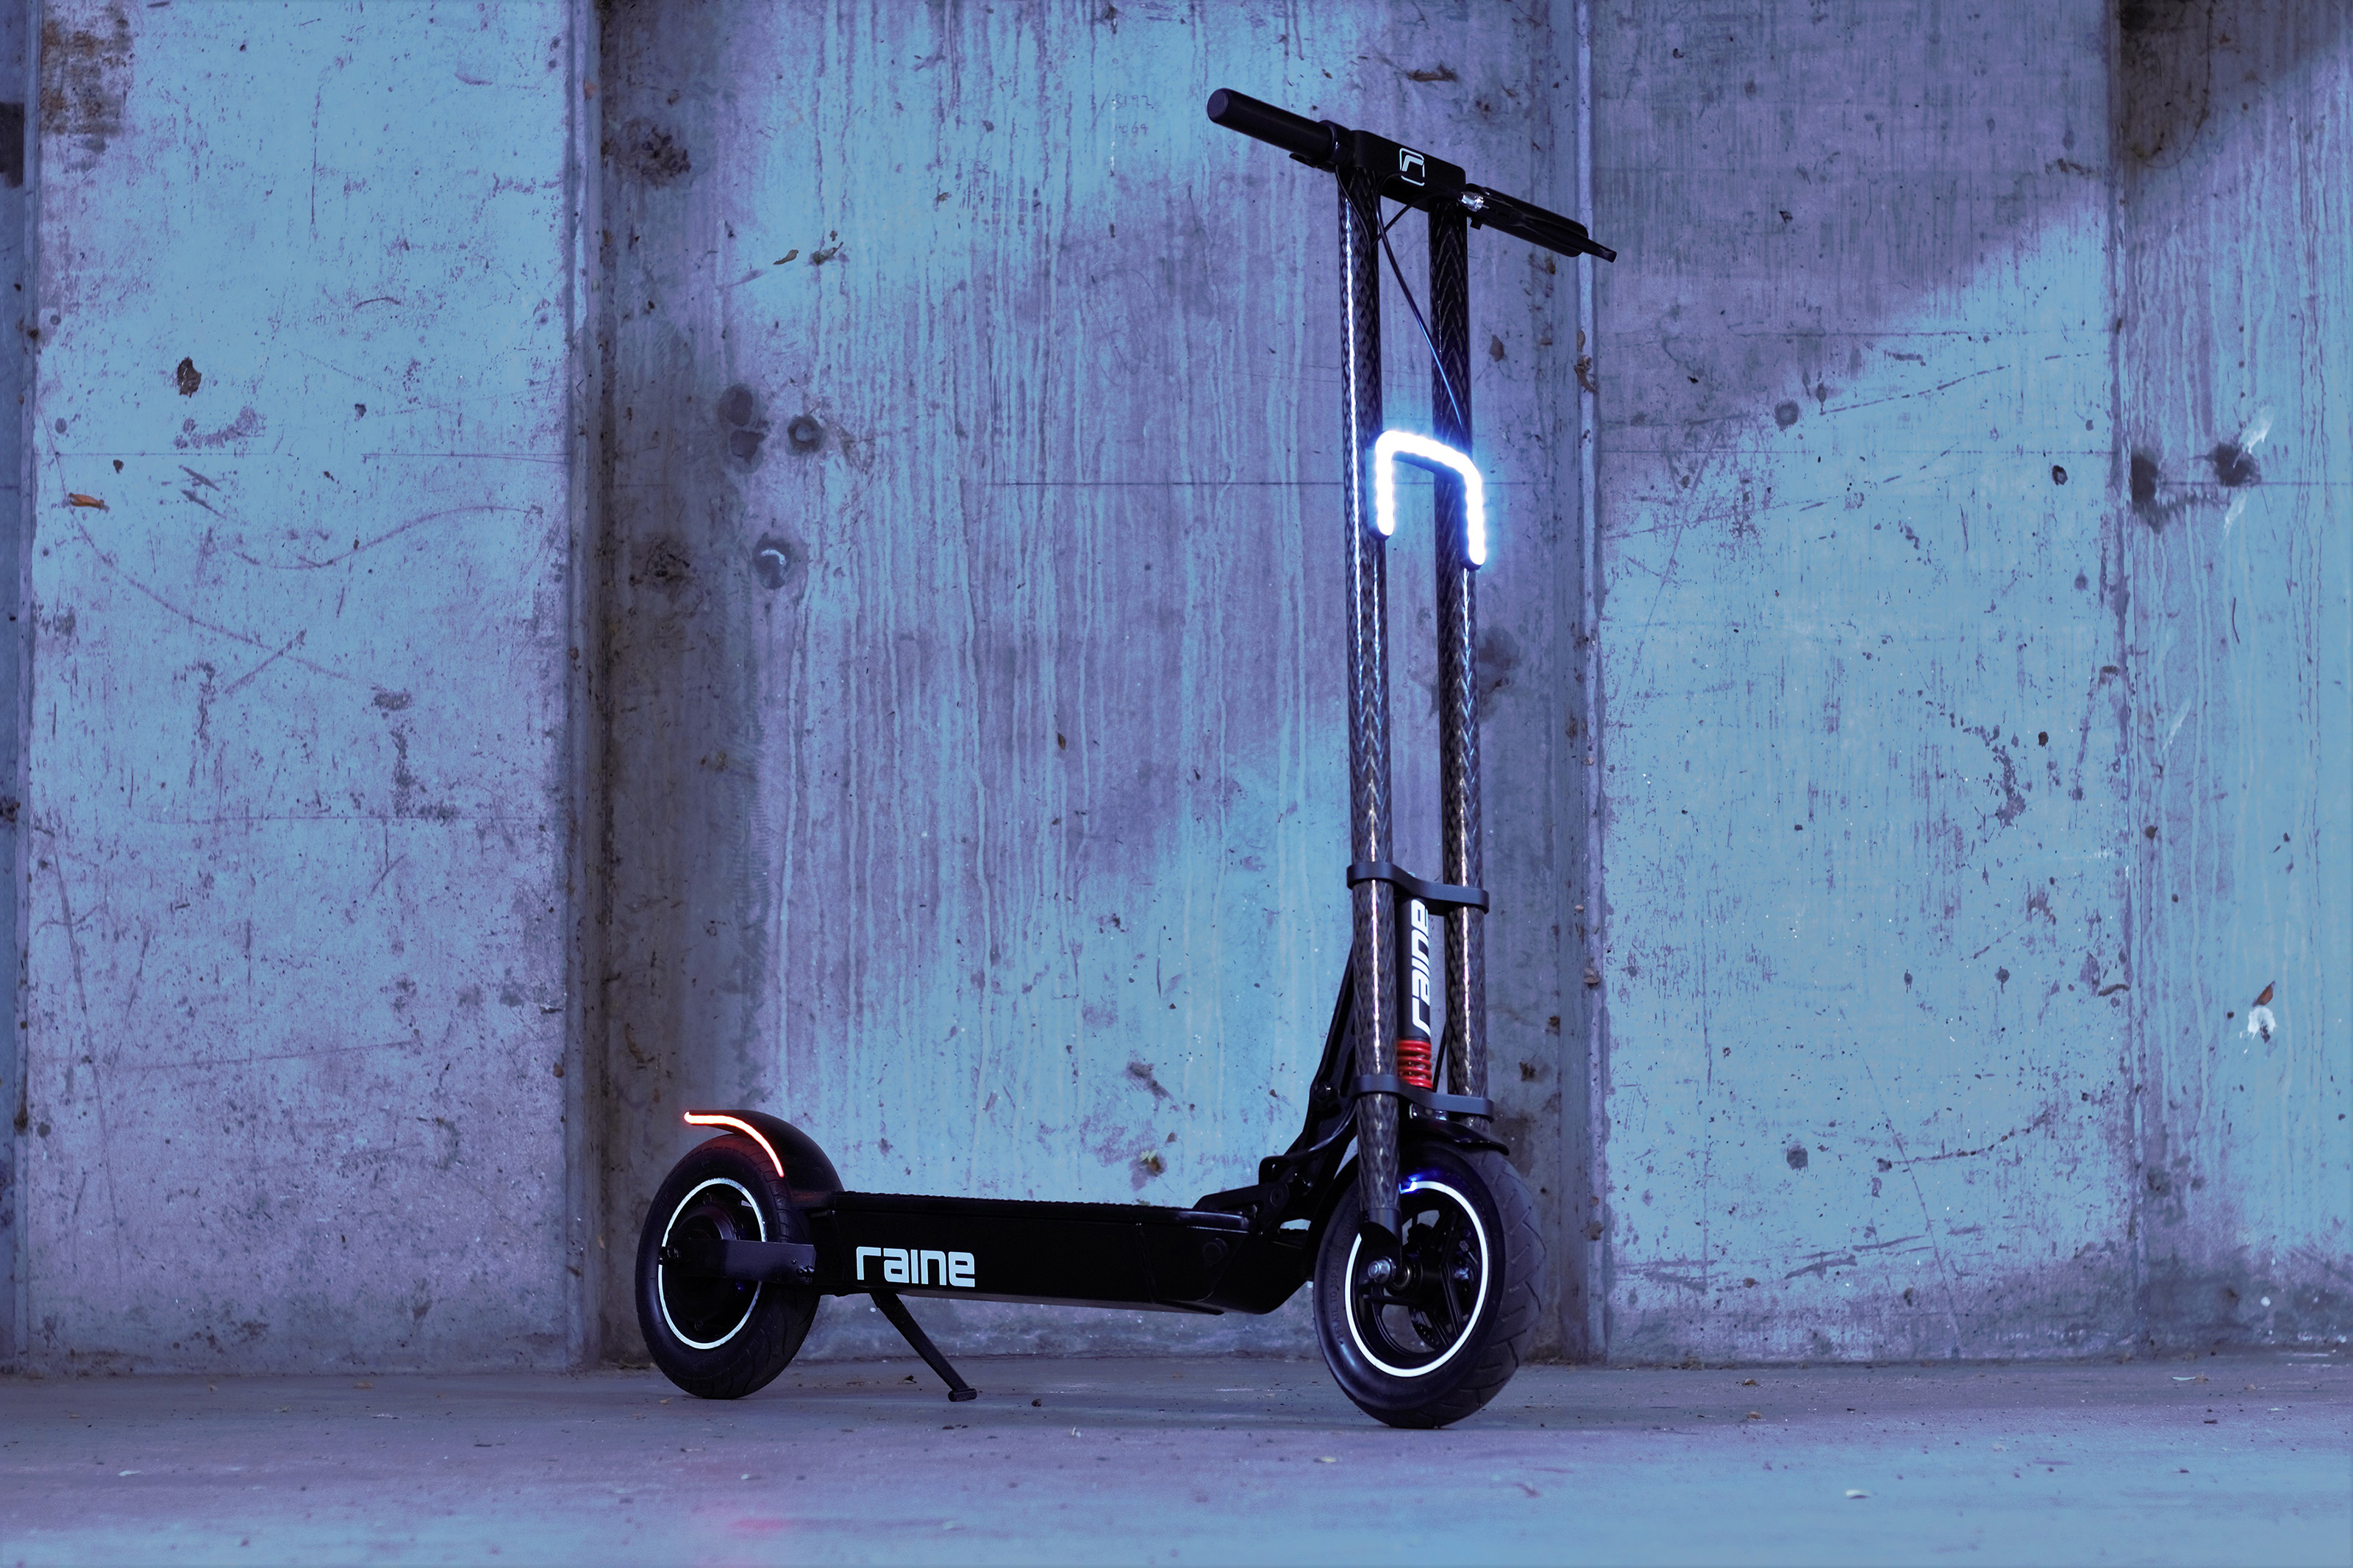 Raine electric scooter's carbon fiber neck is a dual threat of looks and strength..